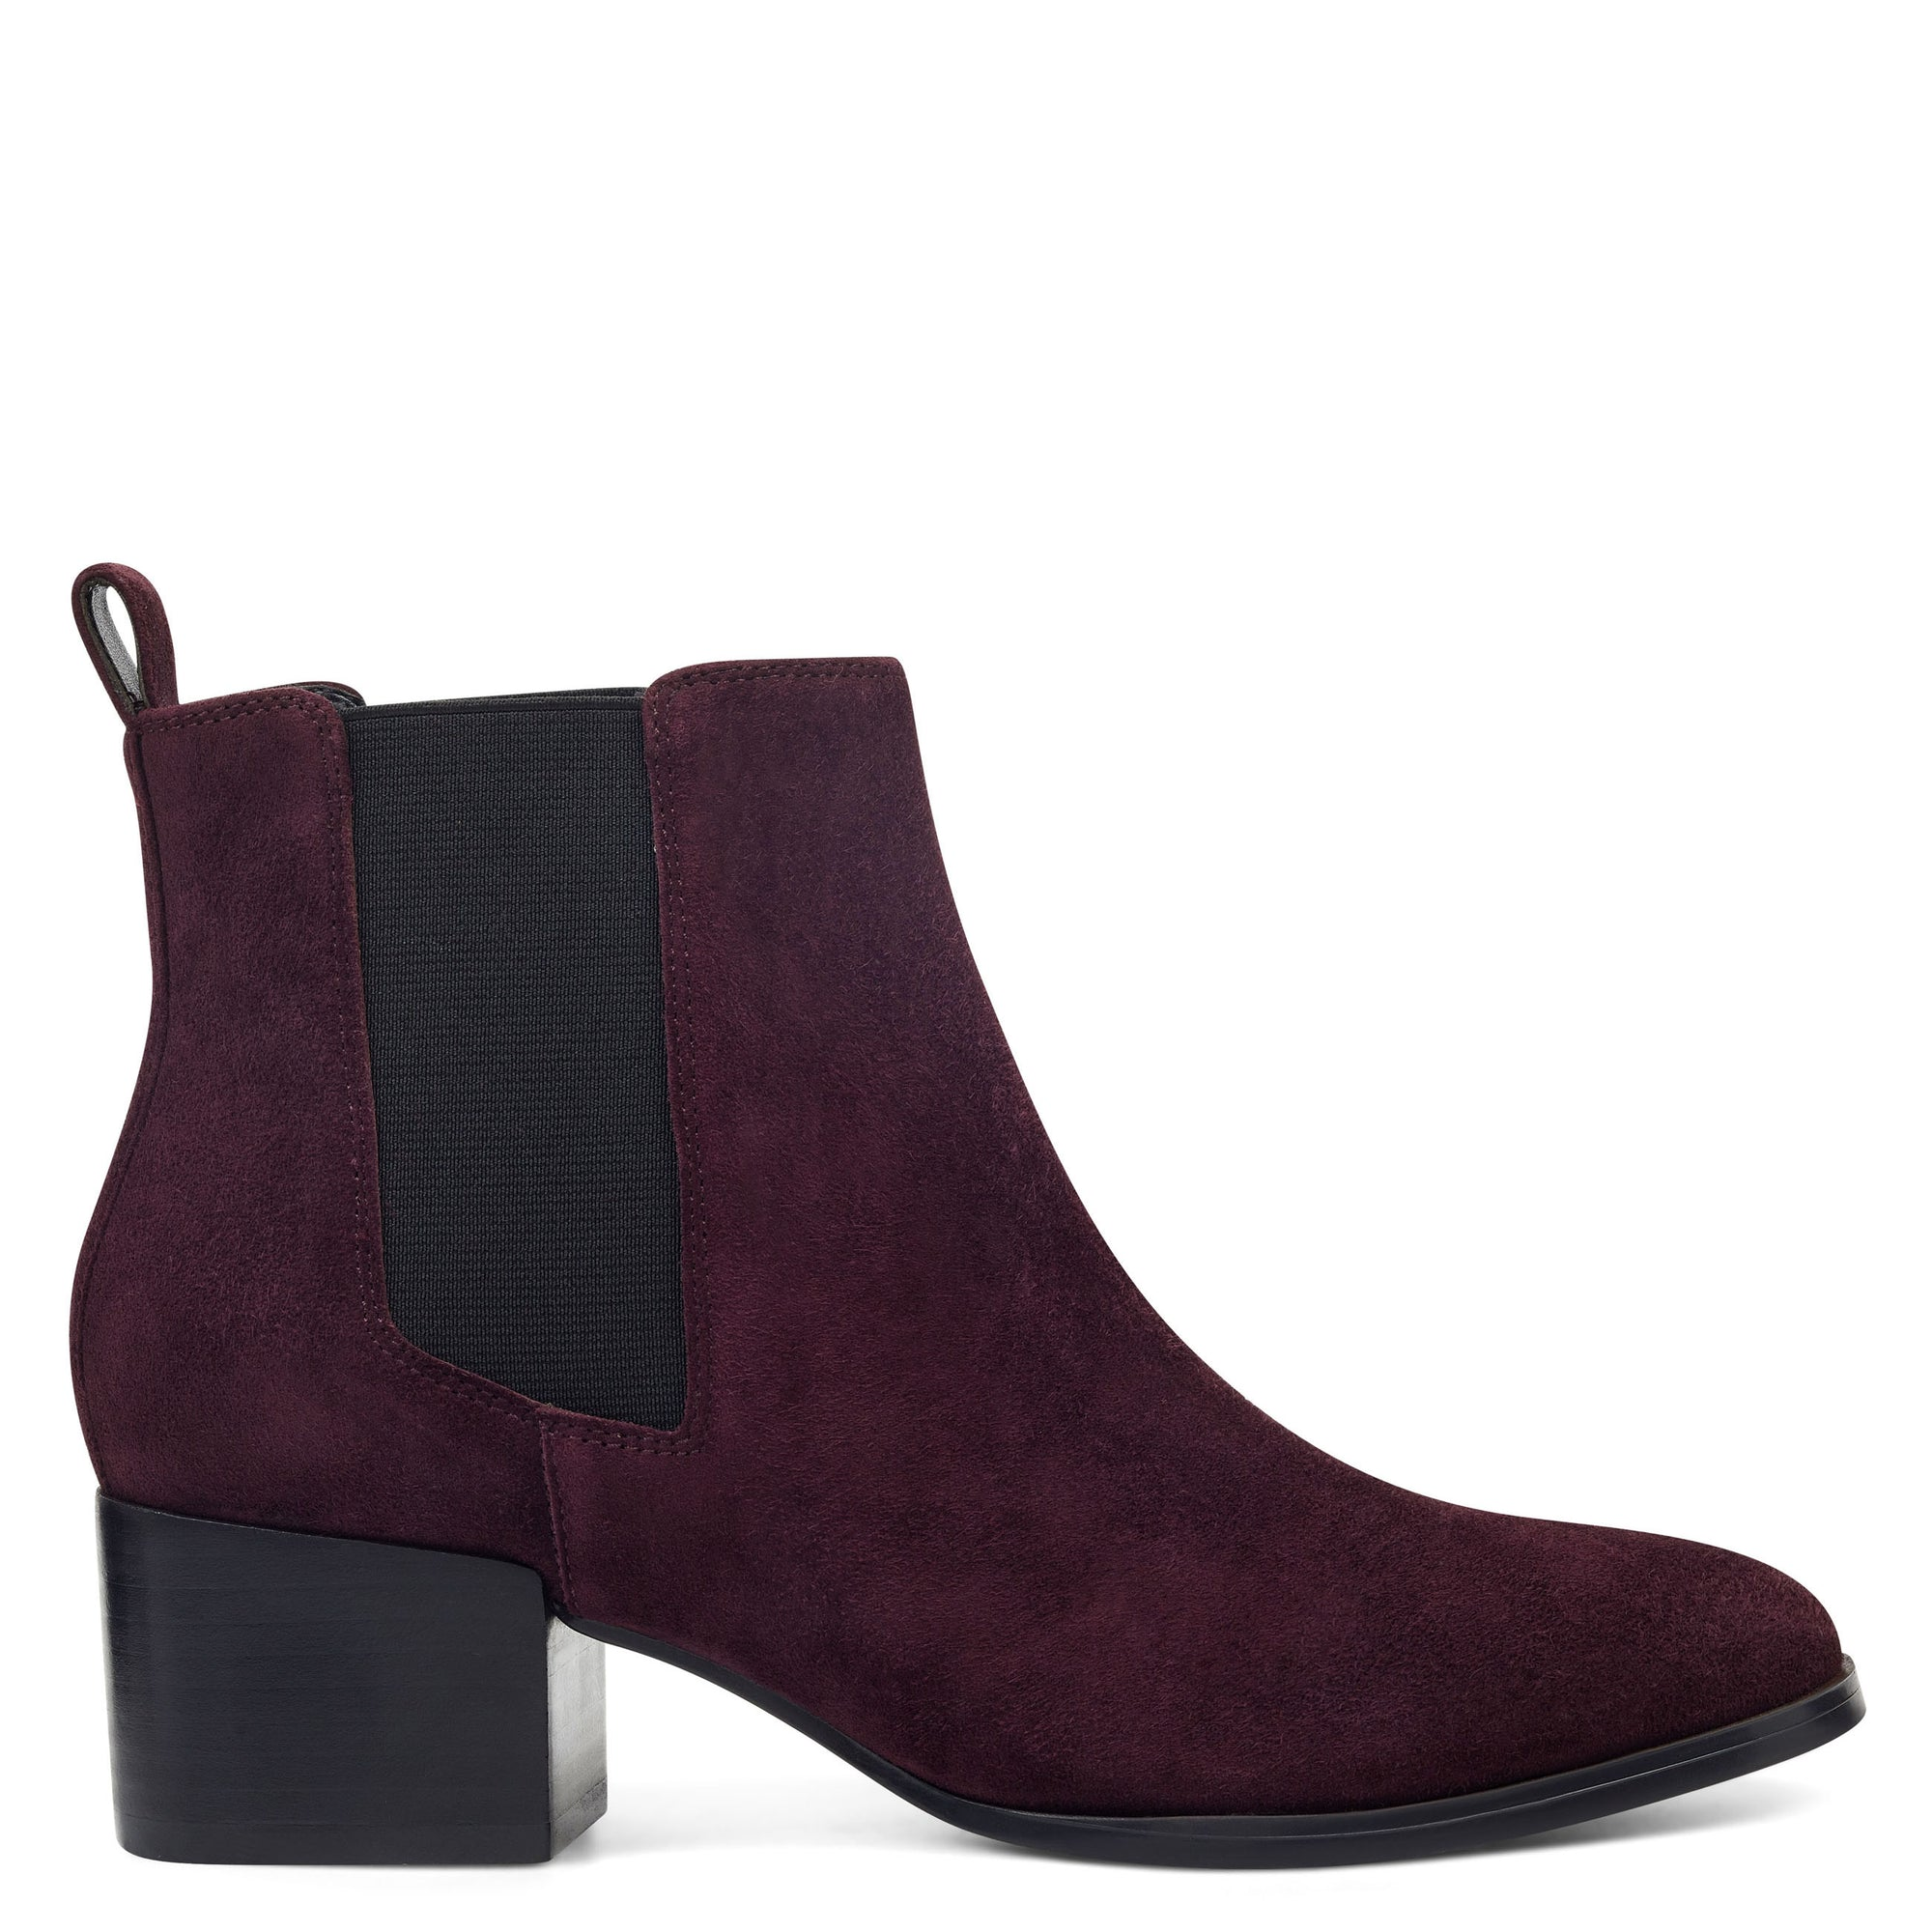 colt-booties-in-wine-suede